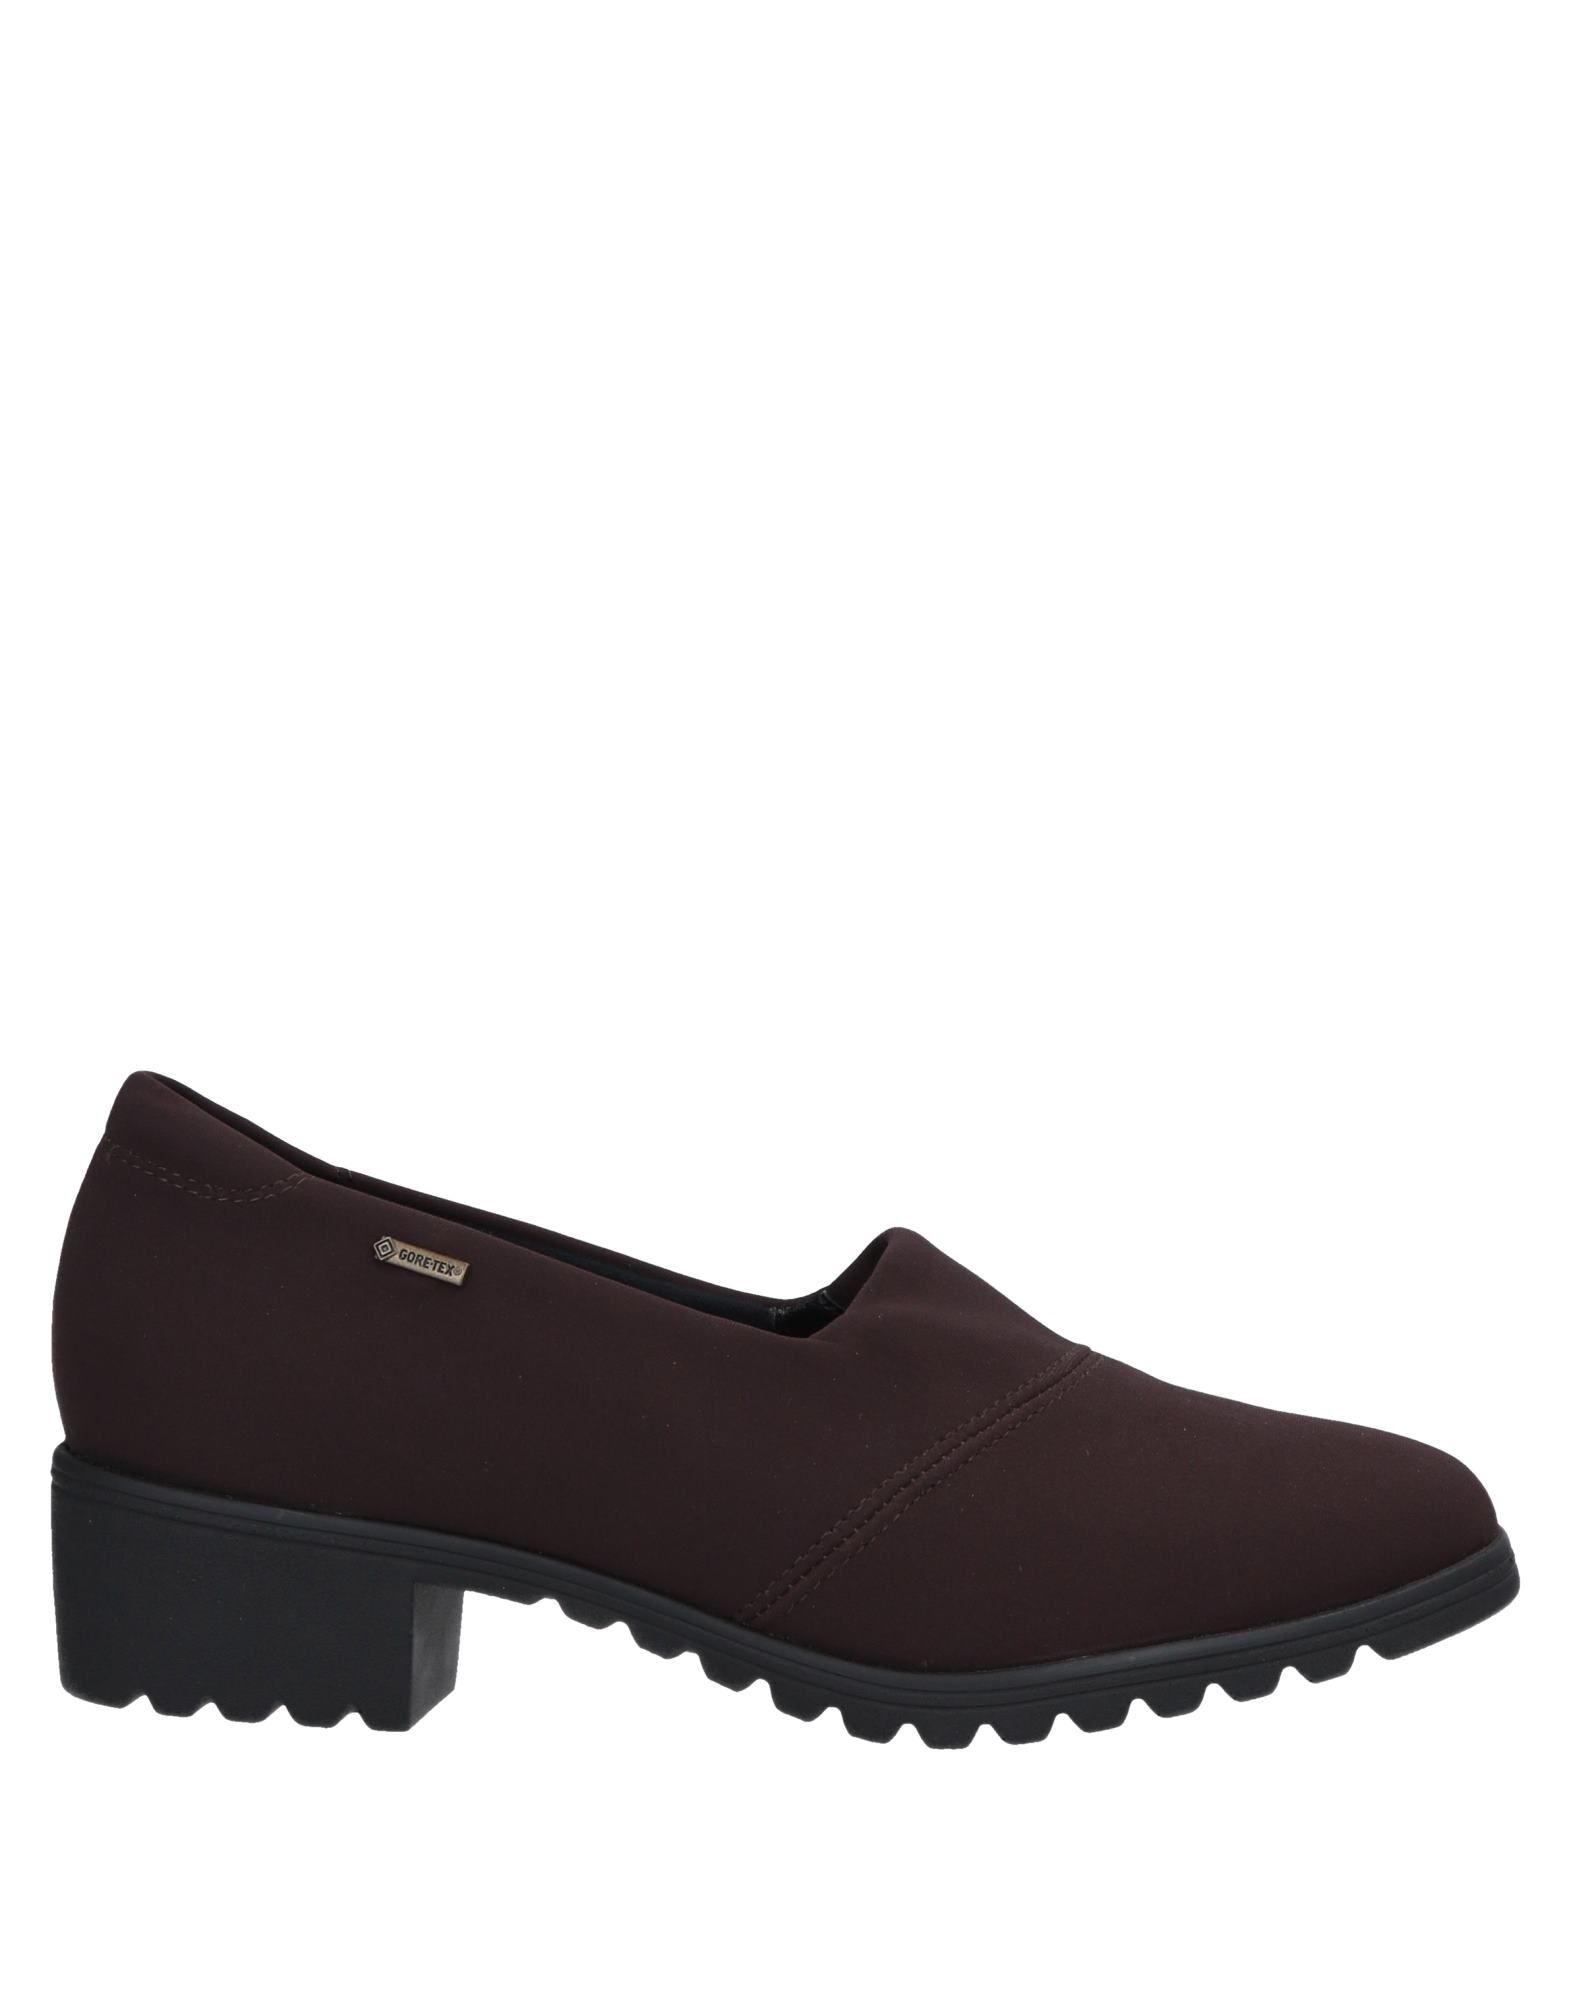 ARA Loafers. plain weave, logo, solid color, round toeline, square heel, fully lined, rubber cleated sole. Textile fibers